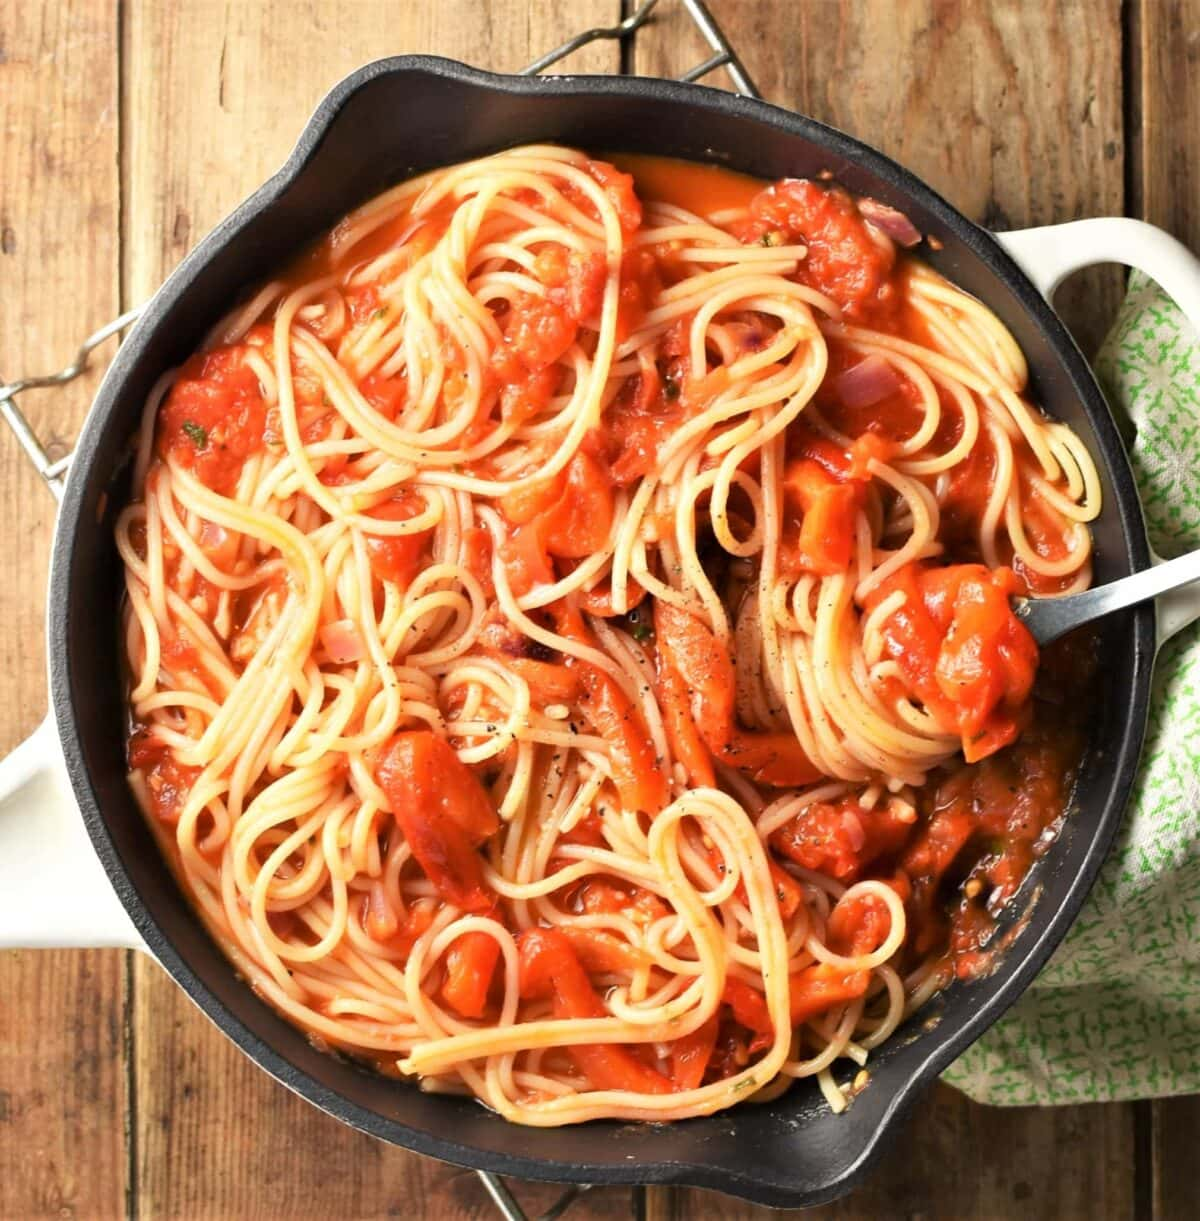 Spaghetti with chunky tomato and red pepper sauce in pan.